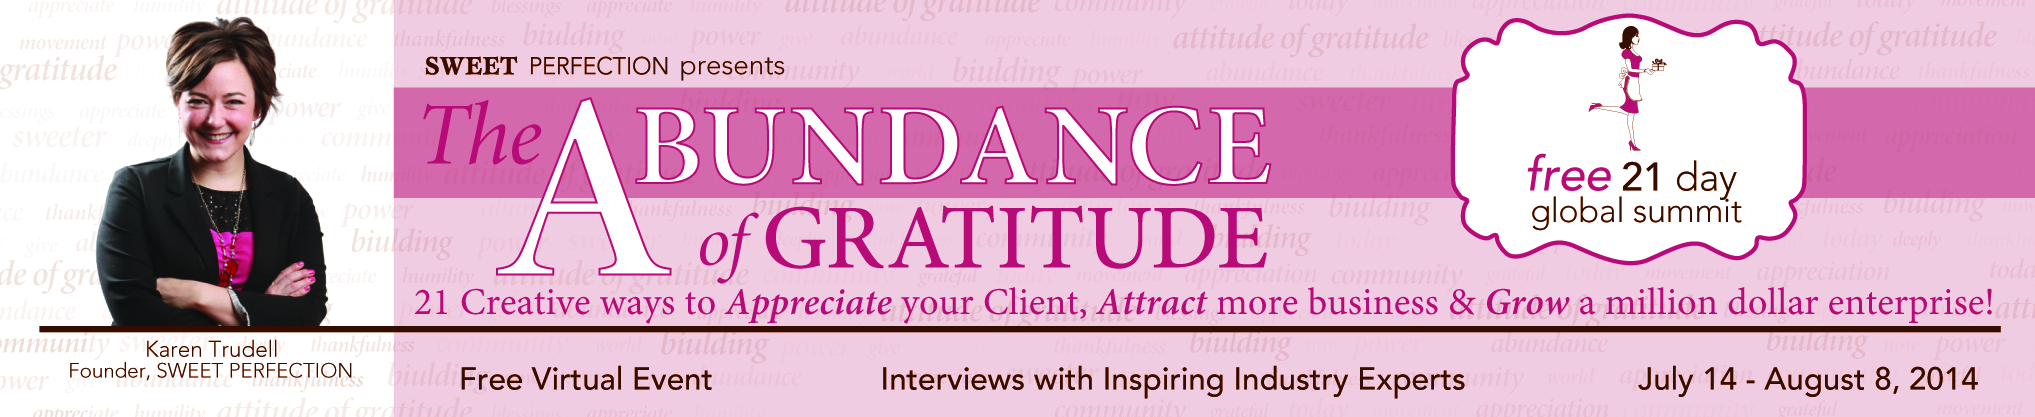 The Abundance of Gratitude Full Banner